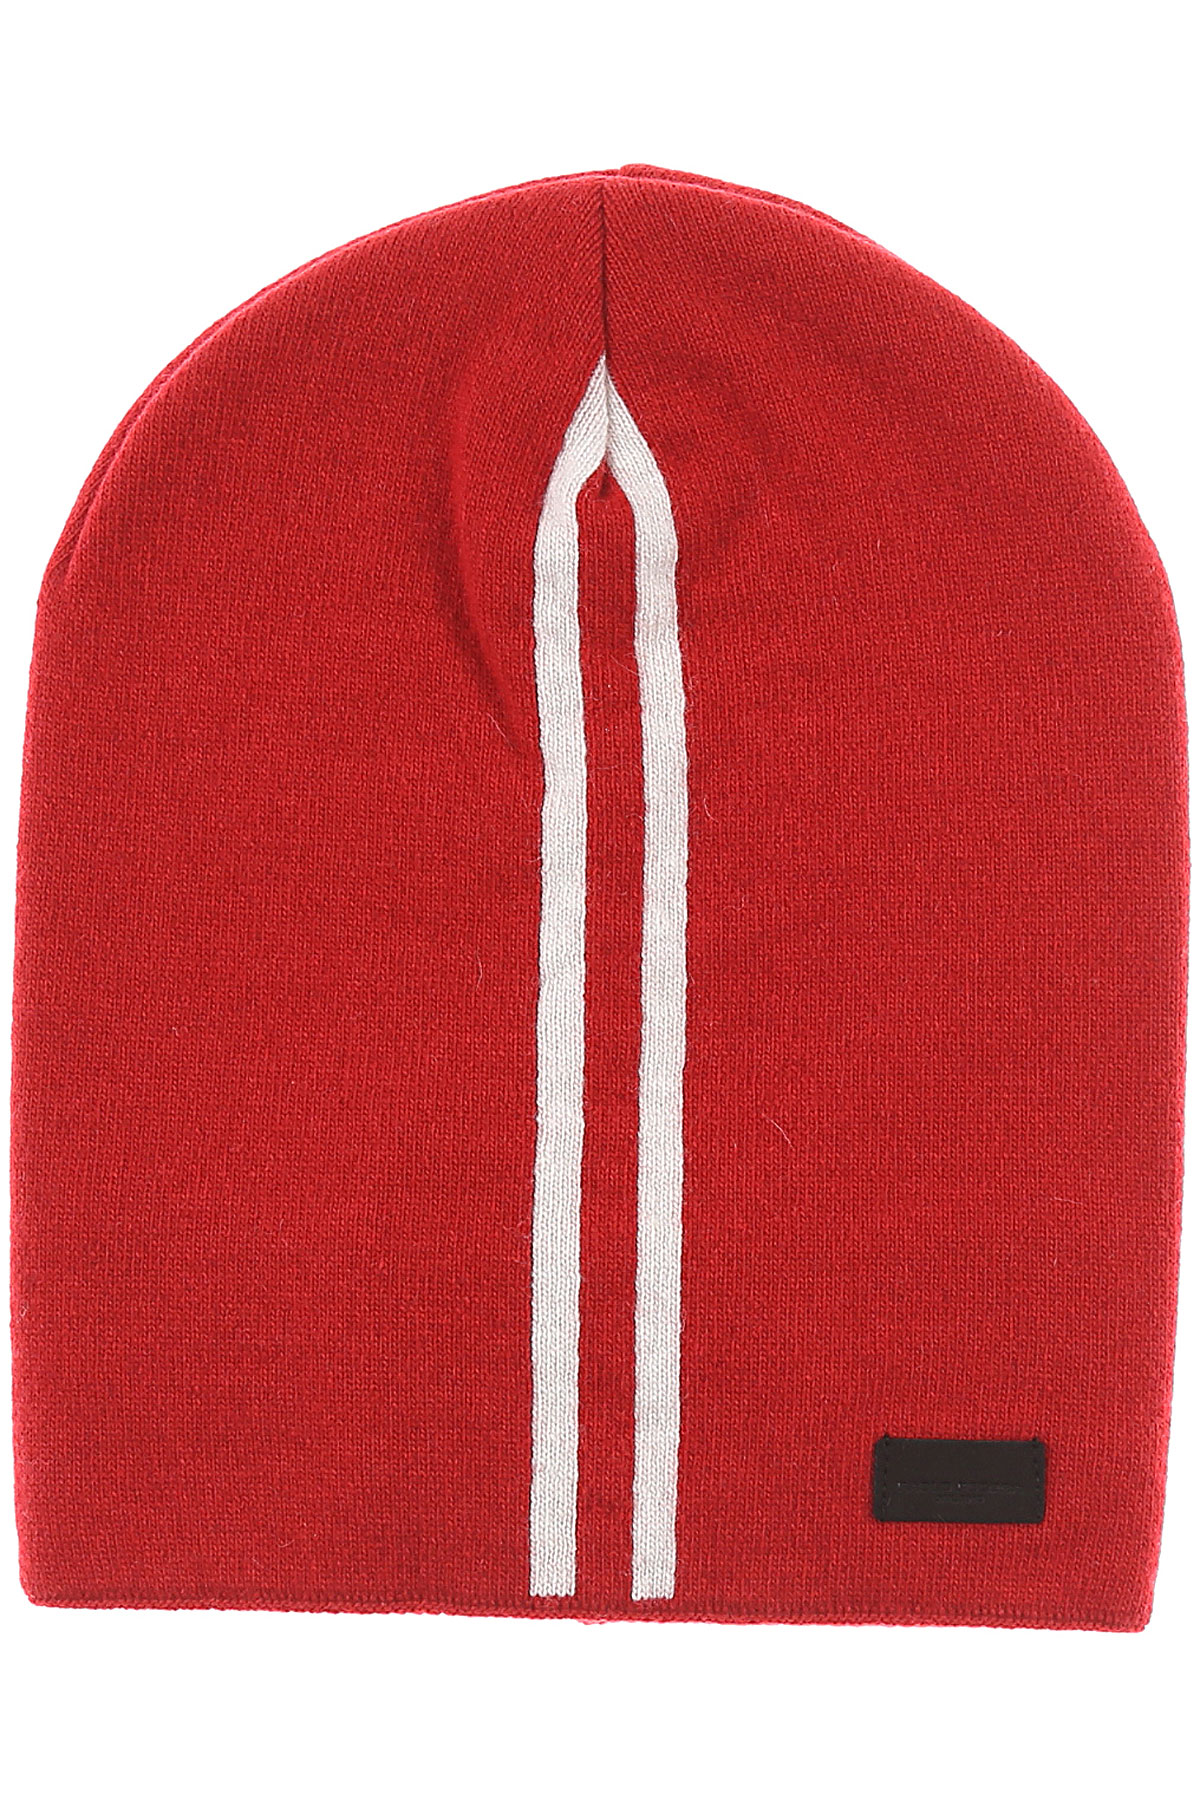 Image of Paolo Pecora Kids Hats for Boys, Red, Wool, 2017, 4Y 8Y